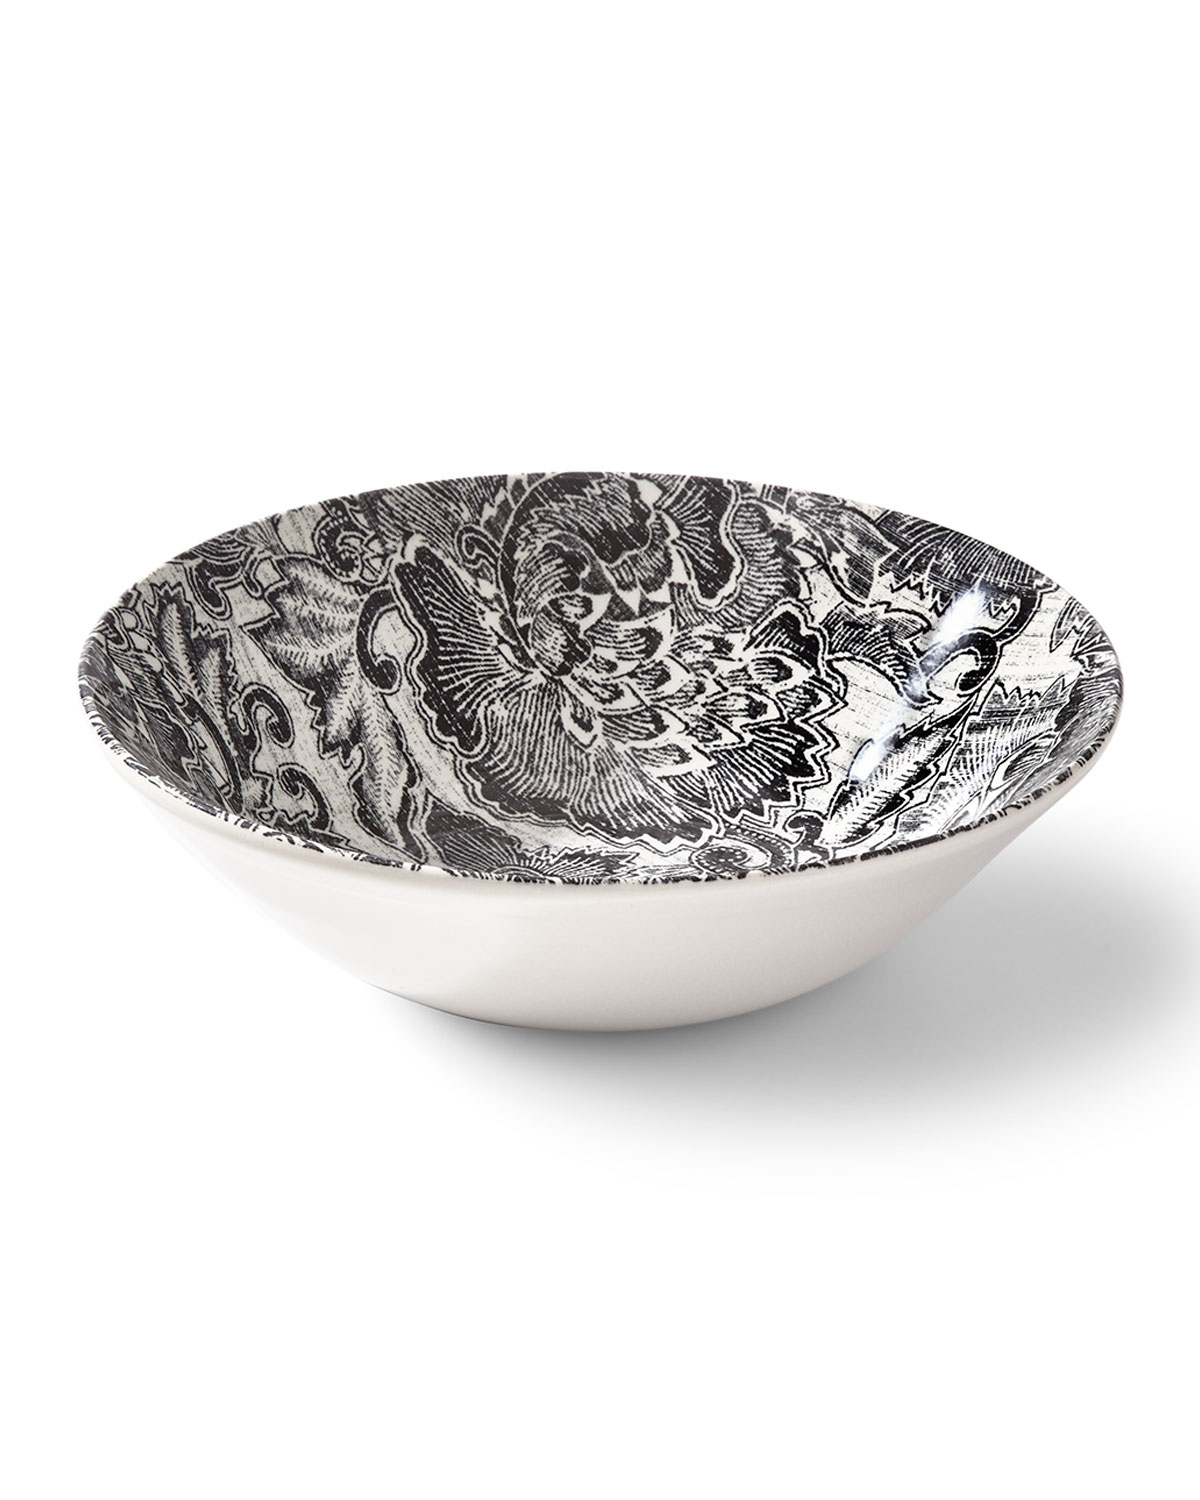 Ralph Lauren Home FADED PEONY CEREAL BOWL